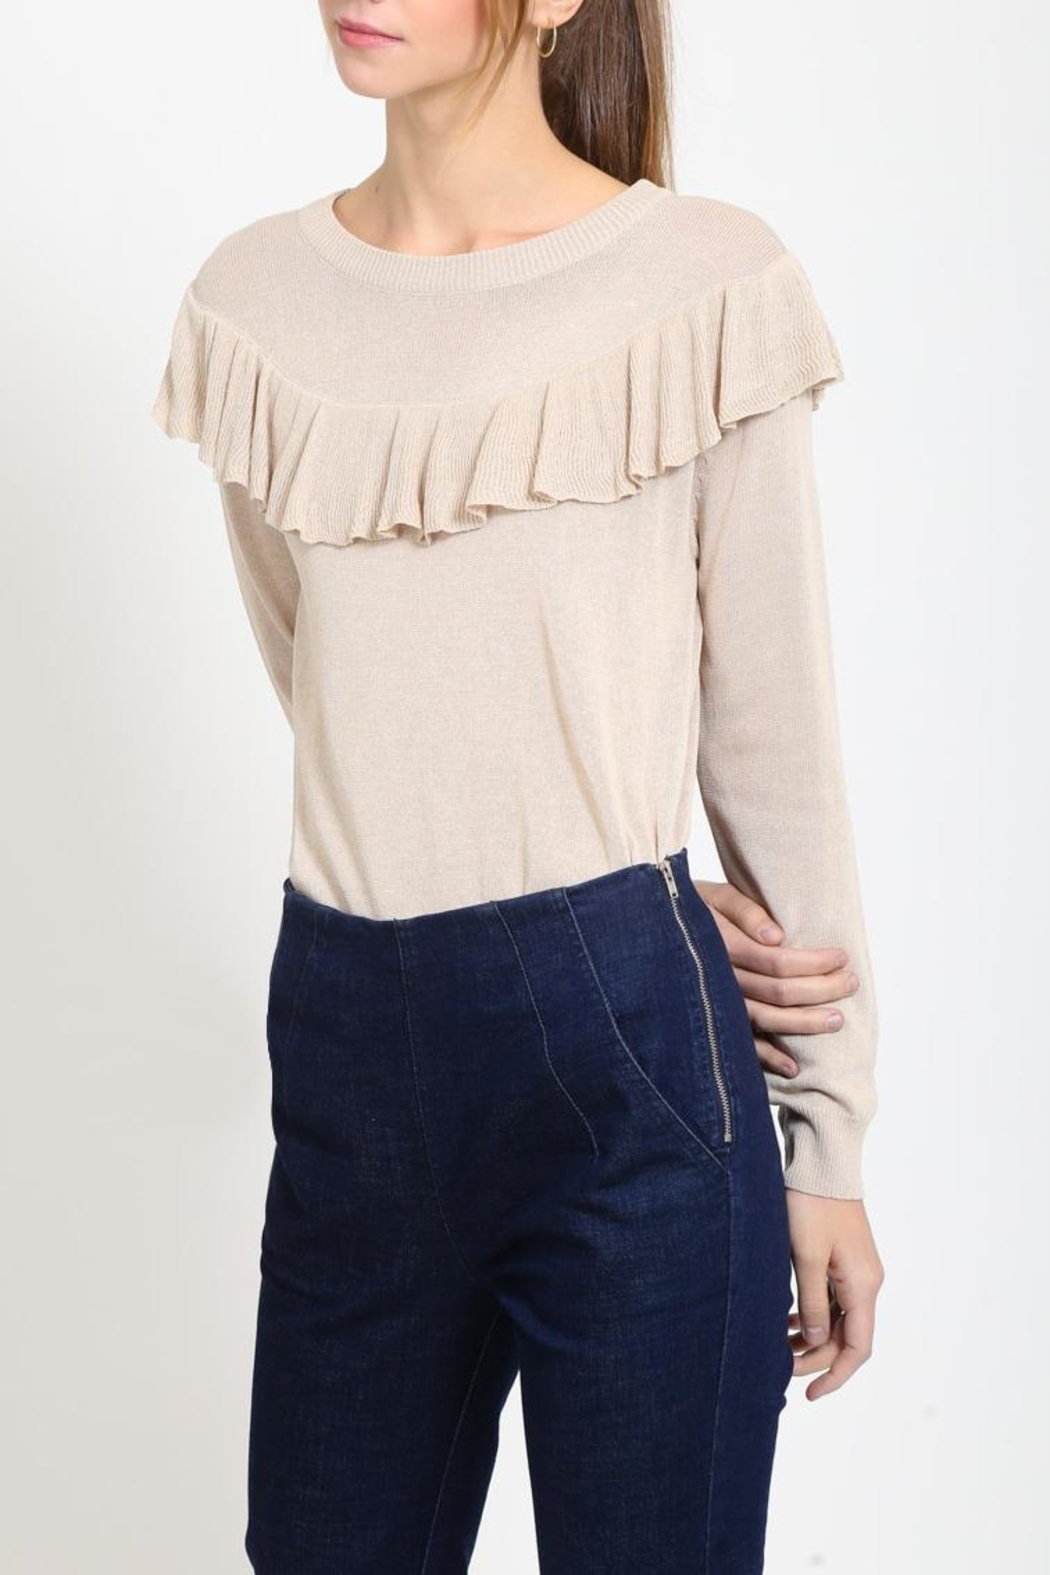 Movint Ruffle Detail Sweater - Front Full Image